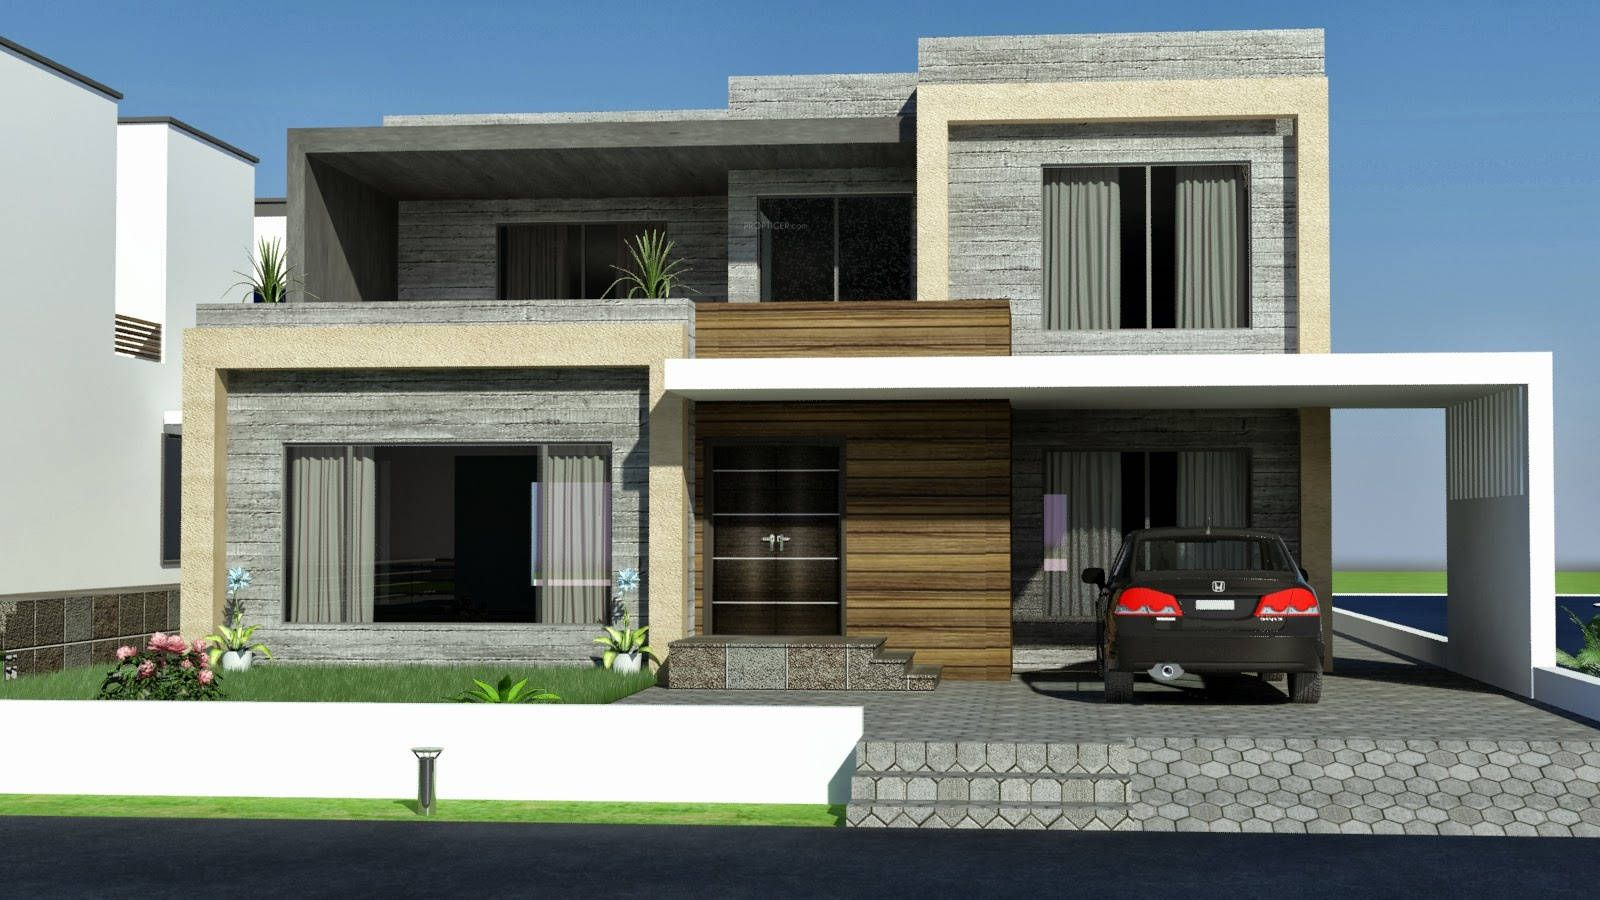 3D Front Elevation.com: Home Remodeling And Renovation Of 1 Kanal | Casa |  Pinterest | House Elevation, House And Modern